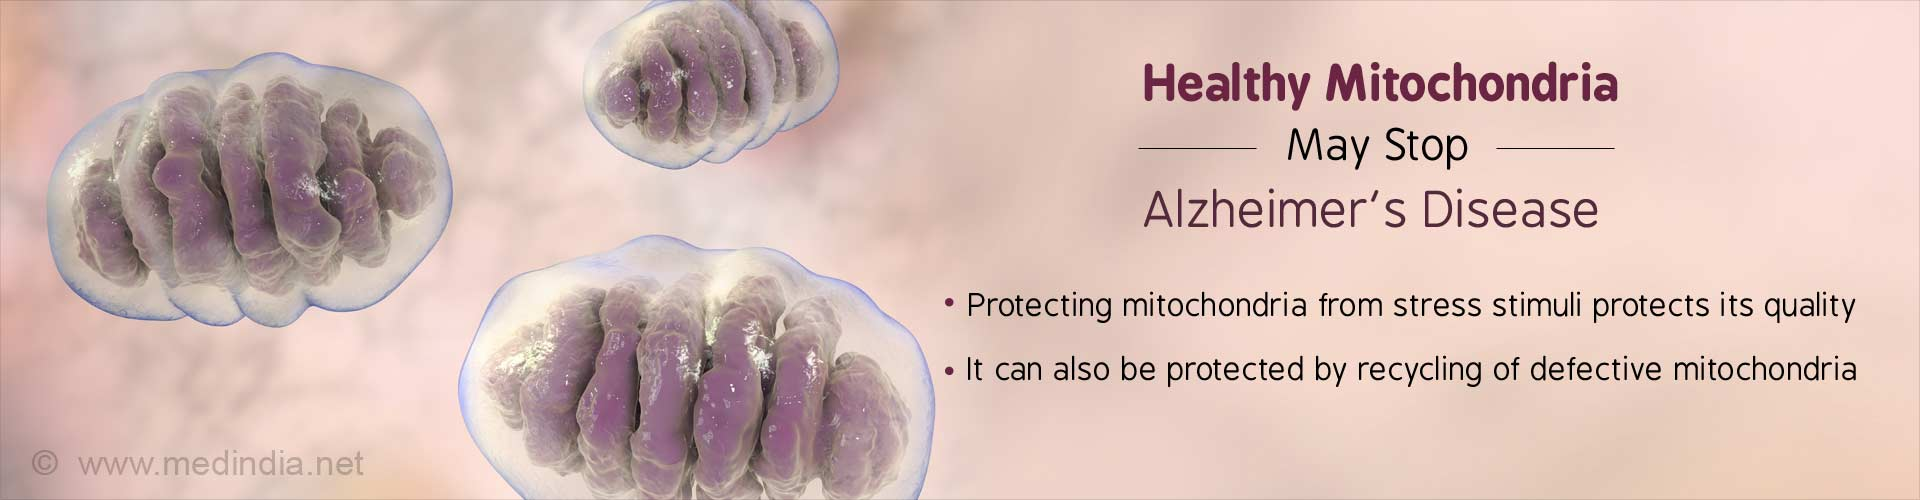 Healthy Mitochondria May Stop Alzheimer's Disease